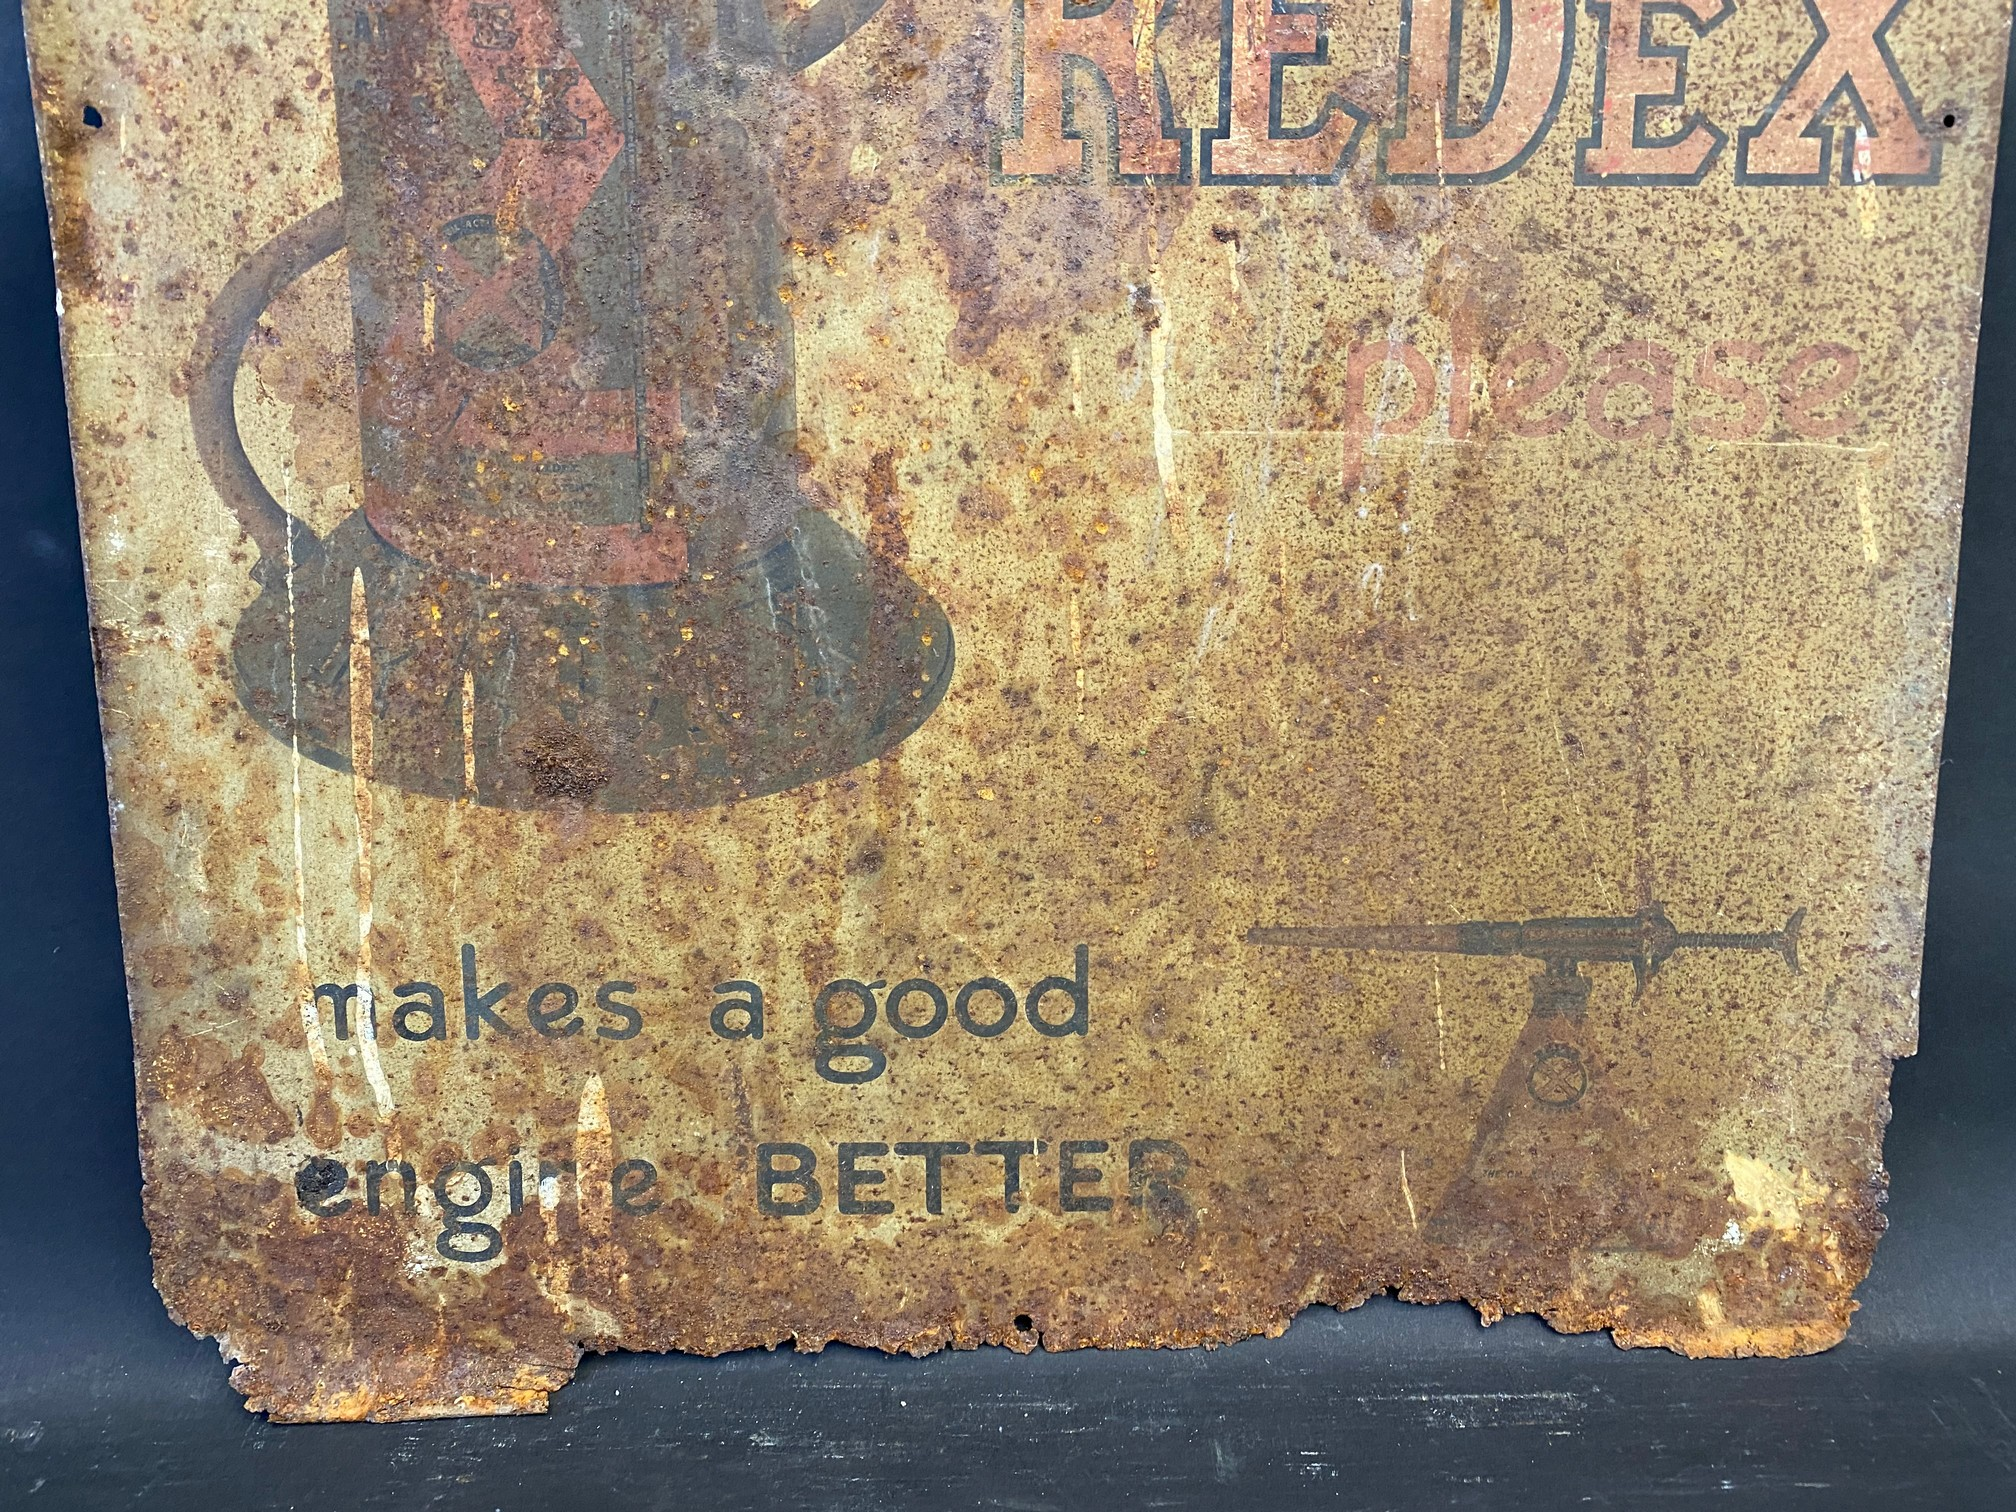 """A Redex tin advertising sign, 17 1/2 x 25"""". - Image 2 of 3"""